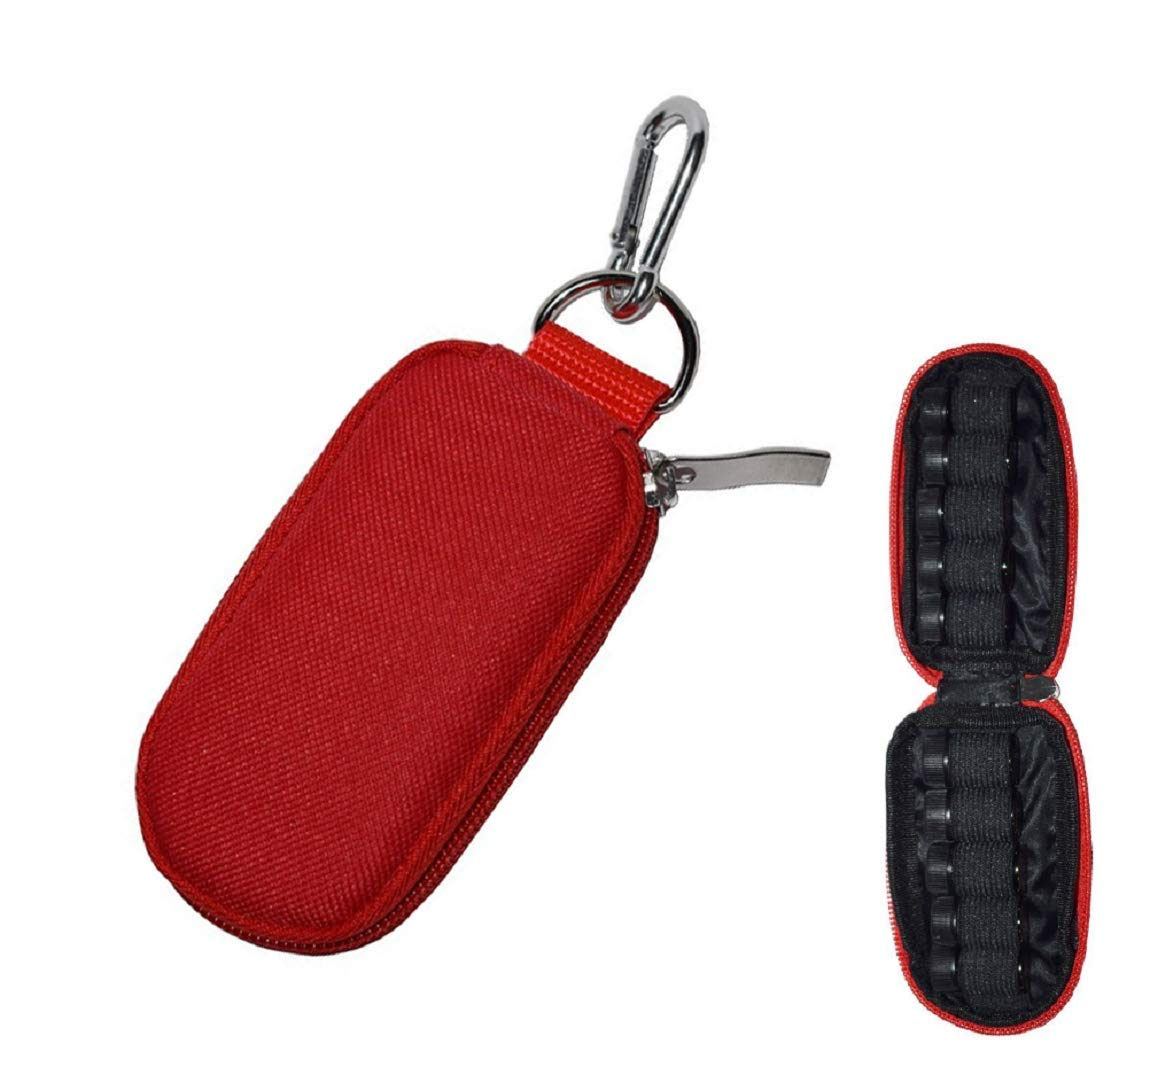 Mini Carrying Bag Keychain Essential Oil Carrying Case for Holds 10 Bottles 2ml&3ml for Travel,Home (Purple)